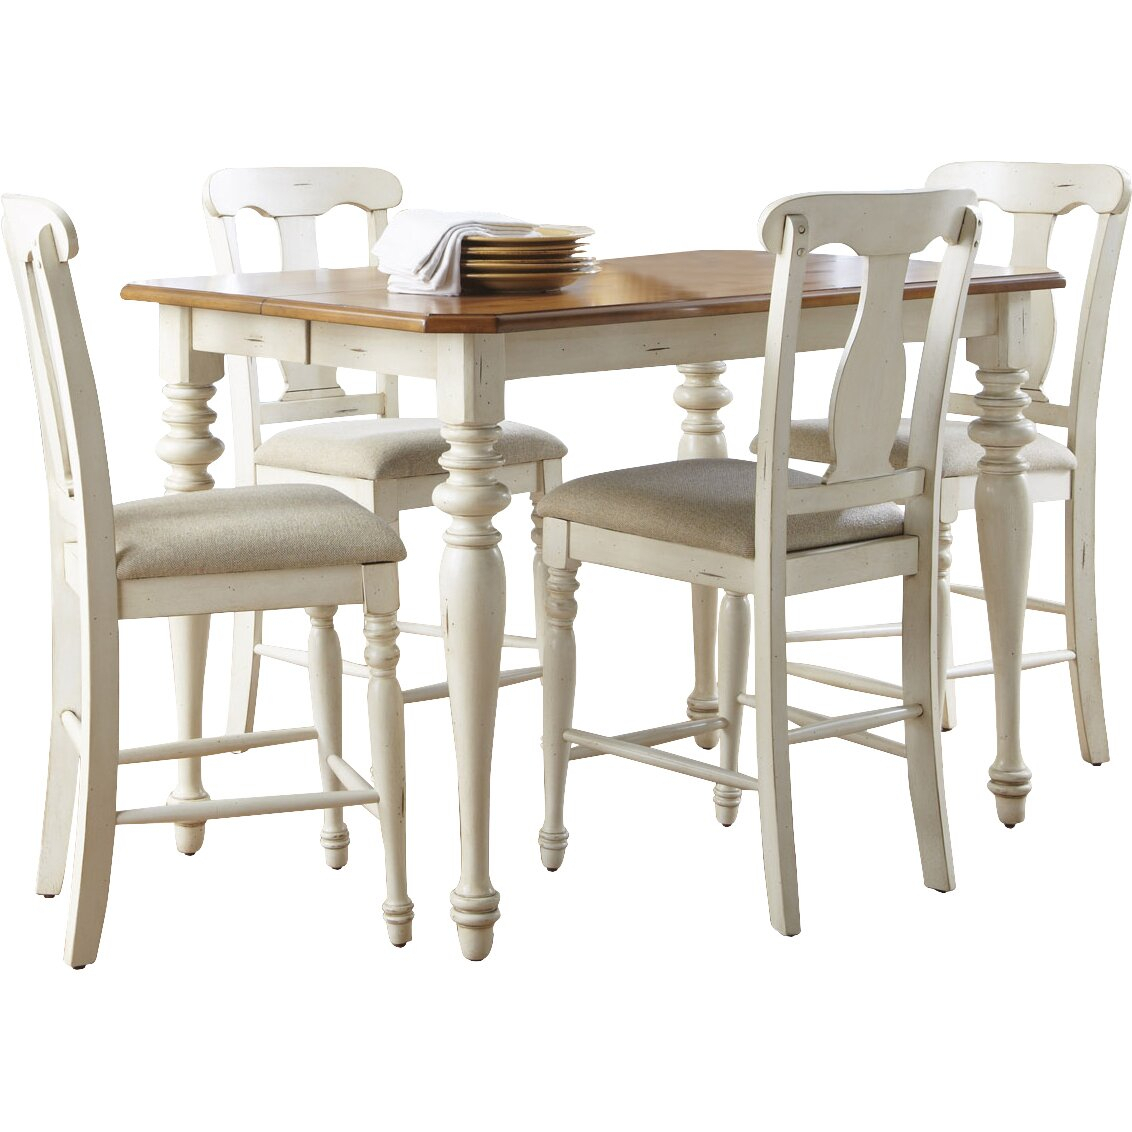 Sutera Counter Height Extendable Dining Table | Wayfair Pertaining To Most Popular Counter Height Extendable Dining Tables (View 6 of 15)